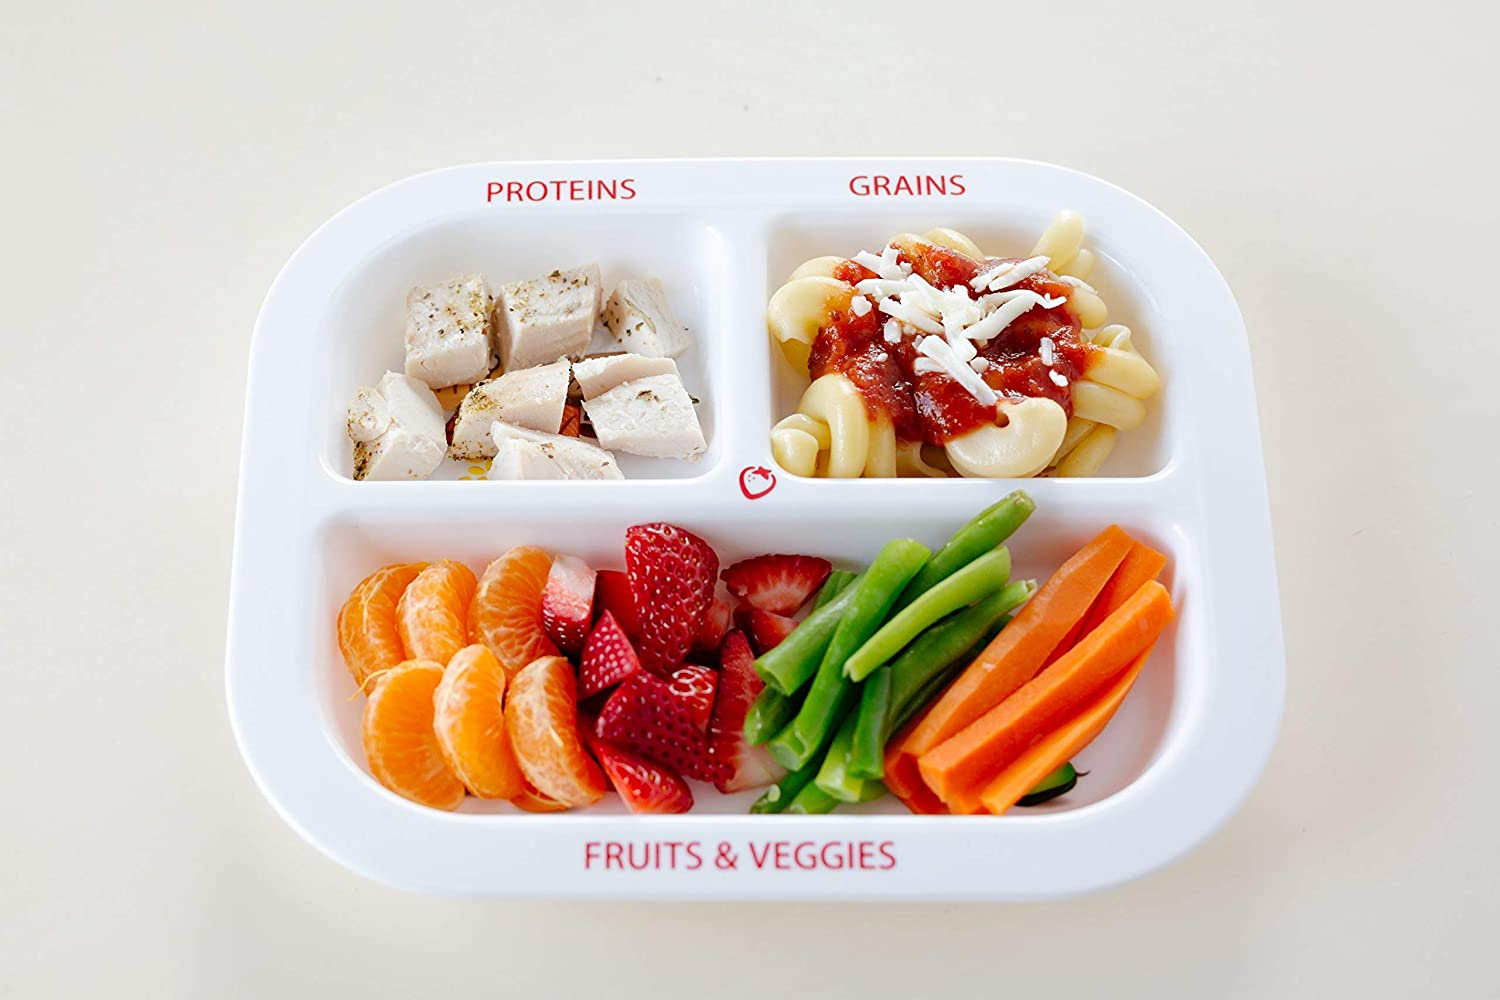 and Protein Healthy Habits Divided Kids Portion Plate Grains 3 Fun /& Balanced Sections for Picky Eaters: Fruits /& Veggies